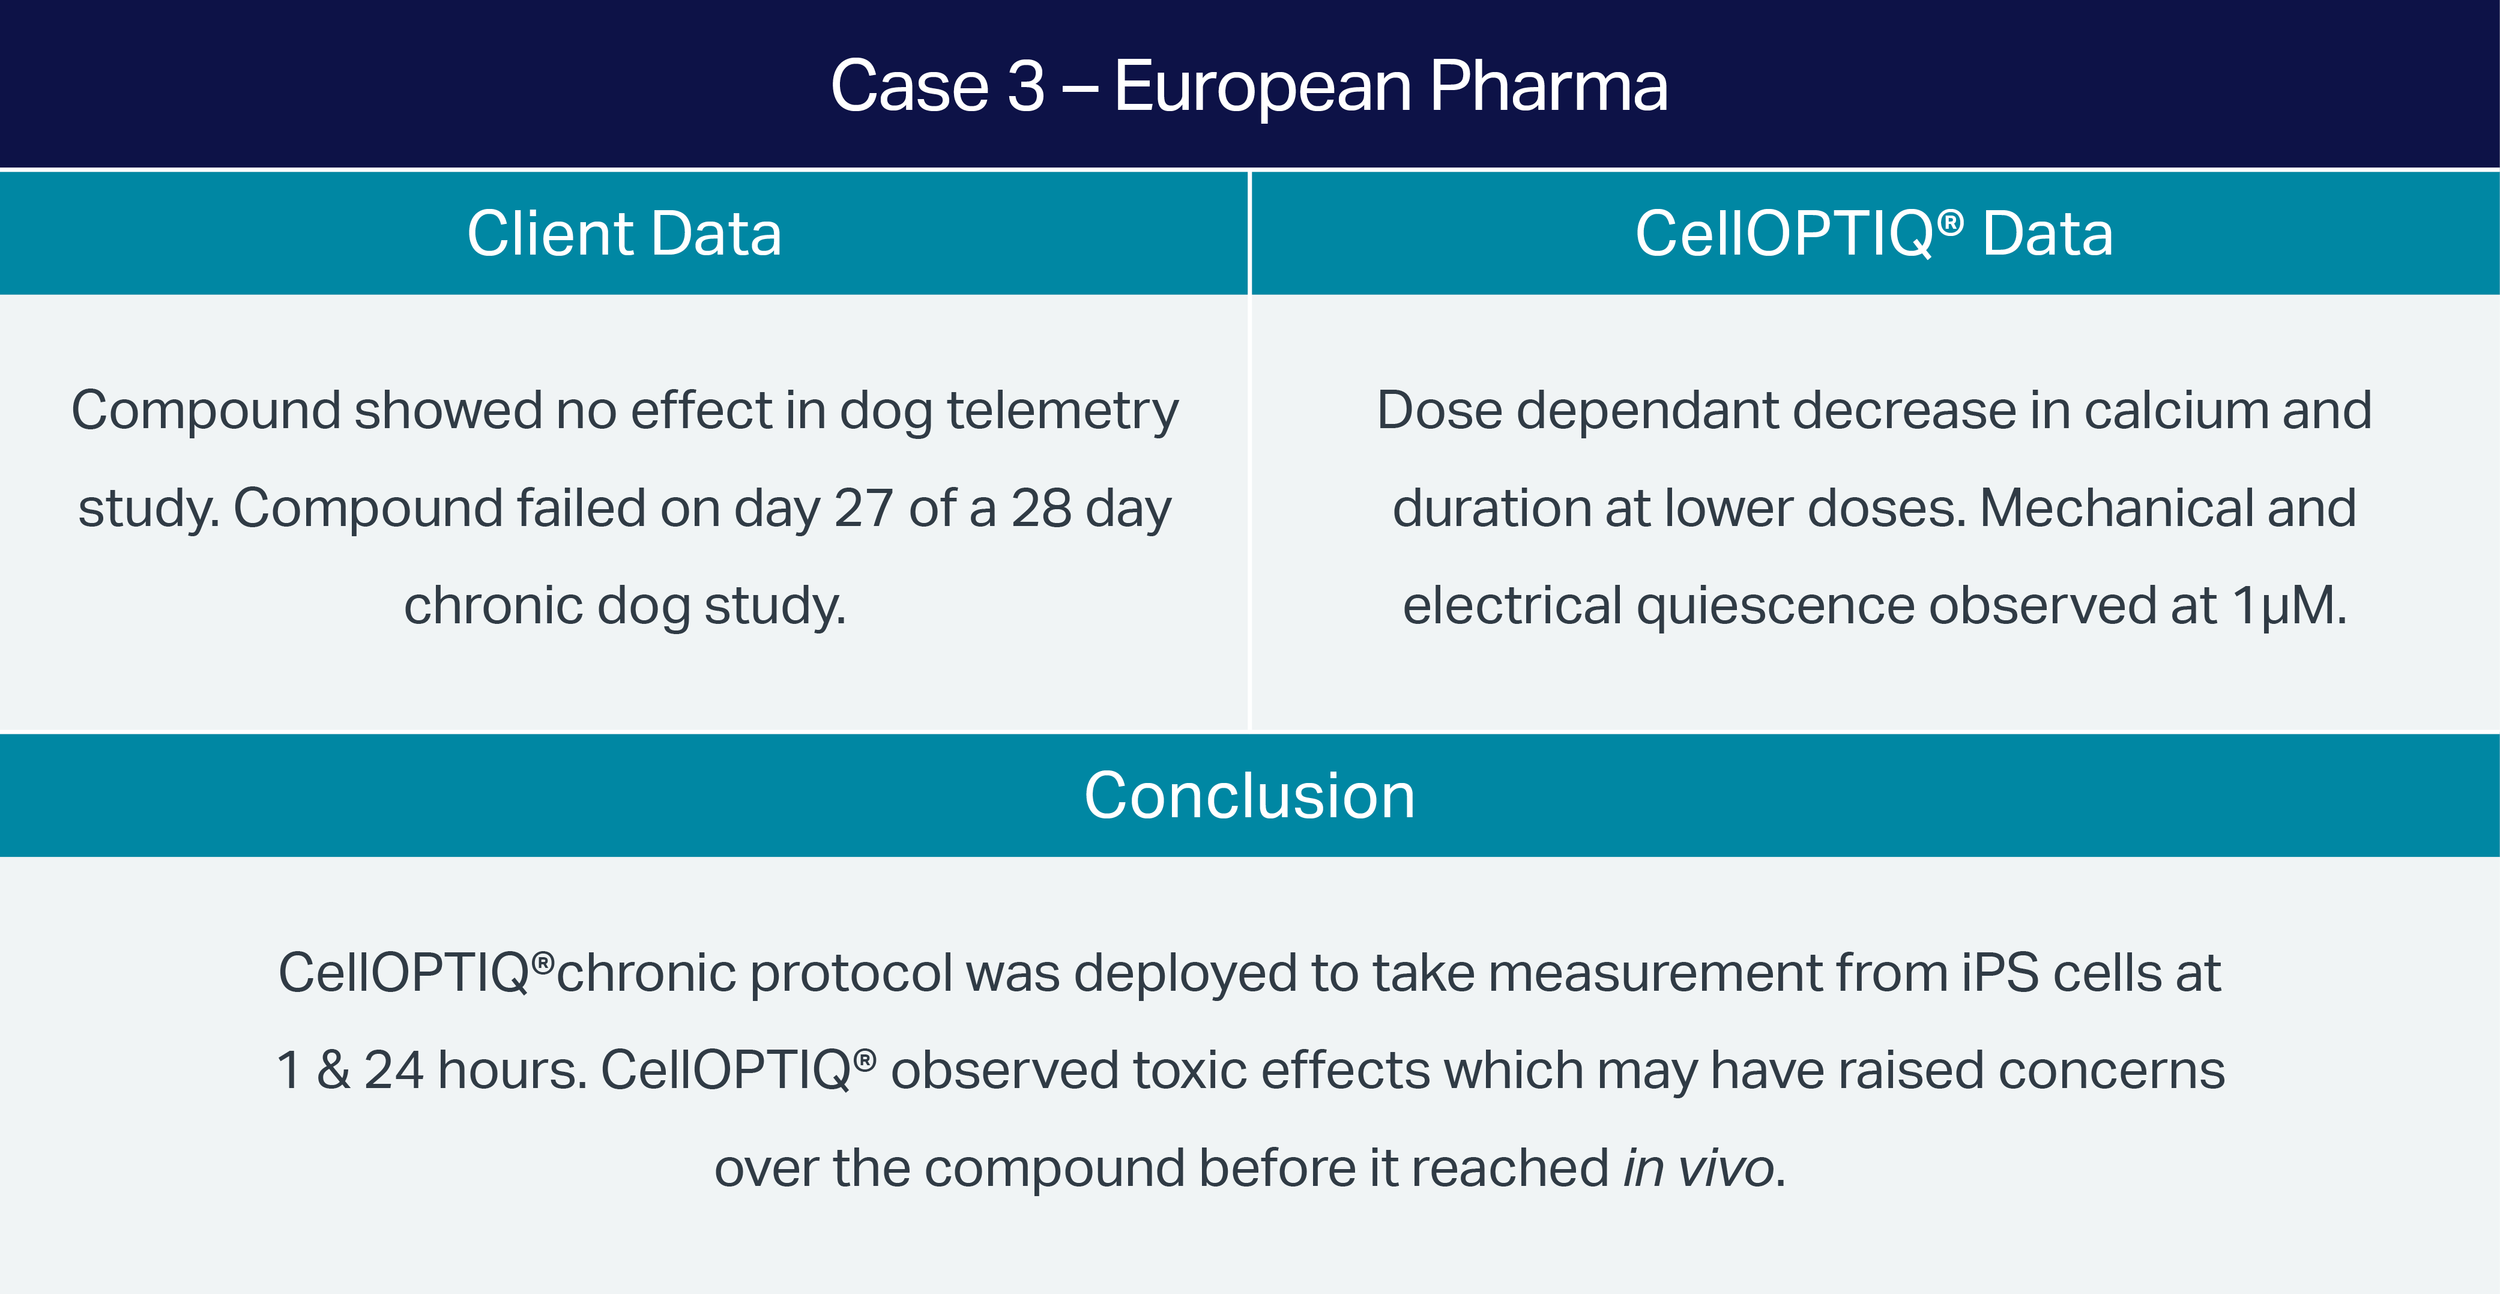 Case-3-Euro-Pharma-Assay-Comparison.png